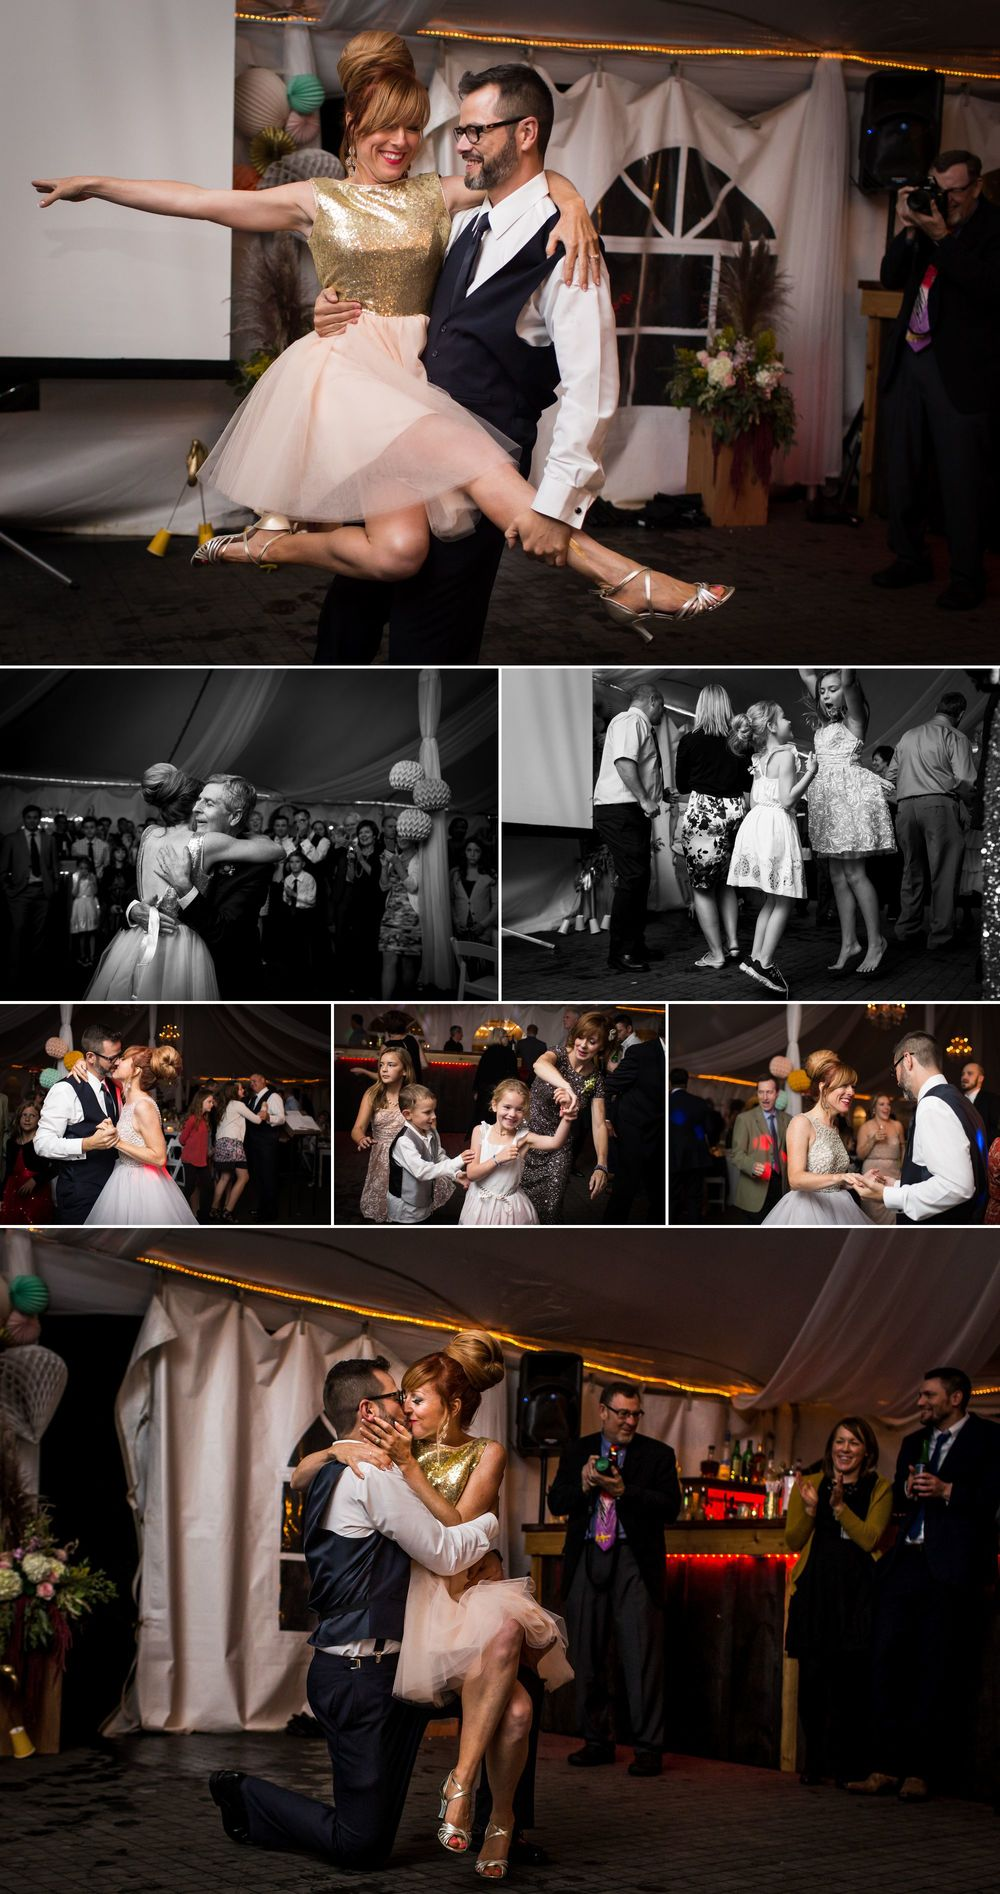 Wedding dancing photos at Stonefields Heritage Farm